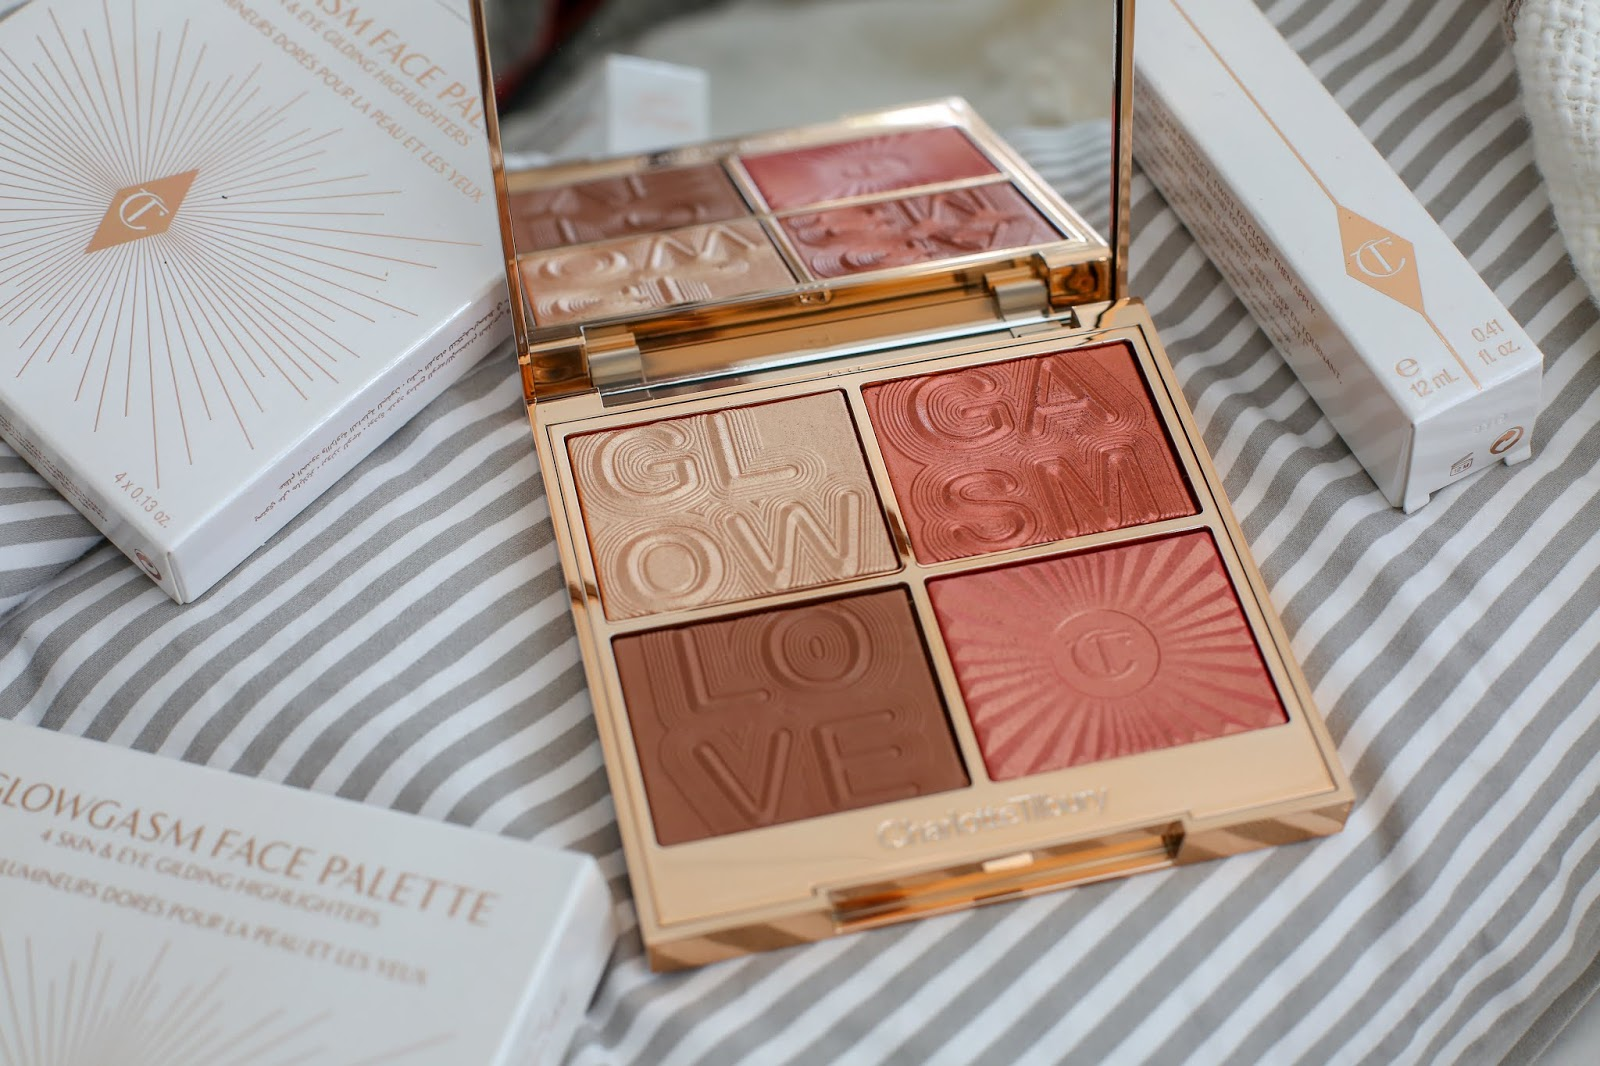 Charlotte Tilbury Lovegasm Face Palette review